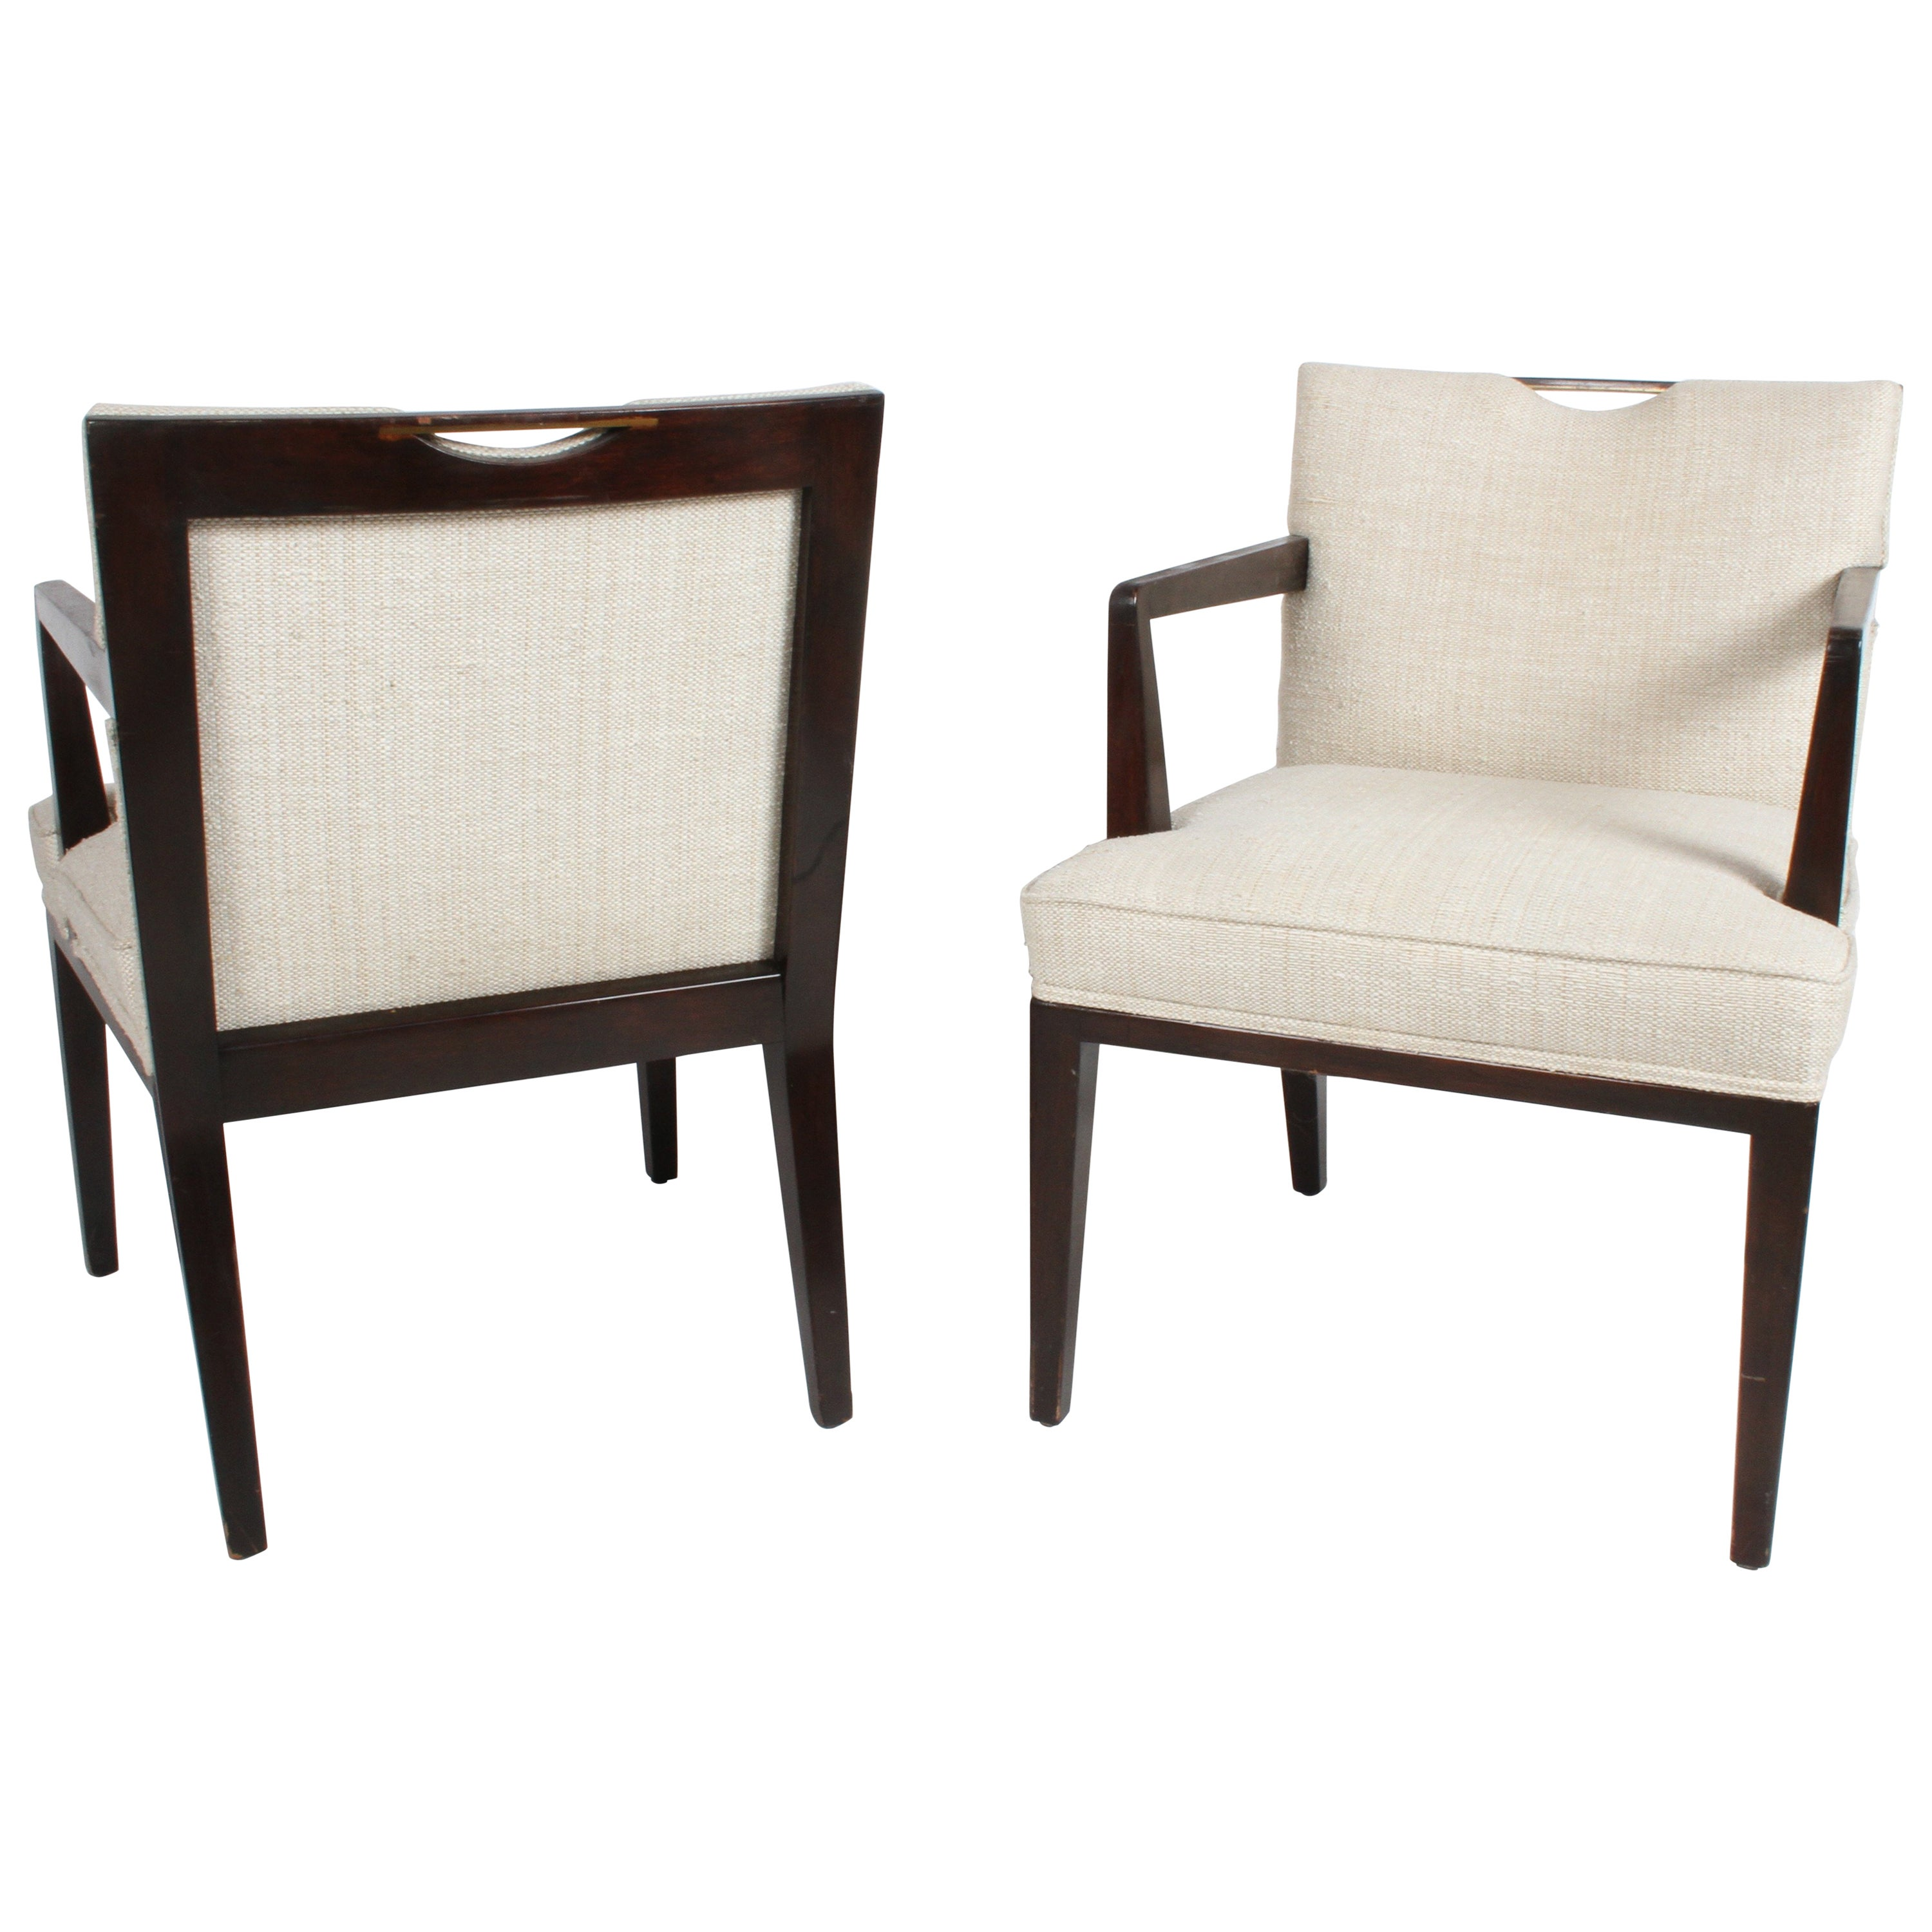 Pair of Edward Wormley for Dunbar Dining Chairs with Brass Handles